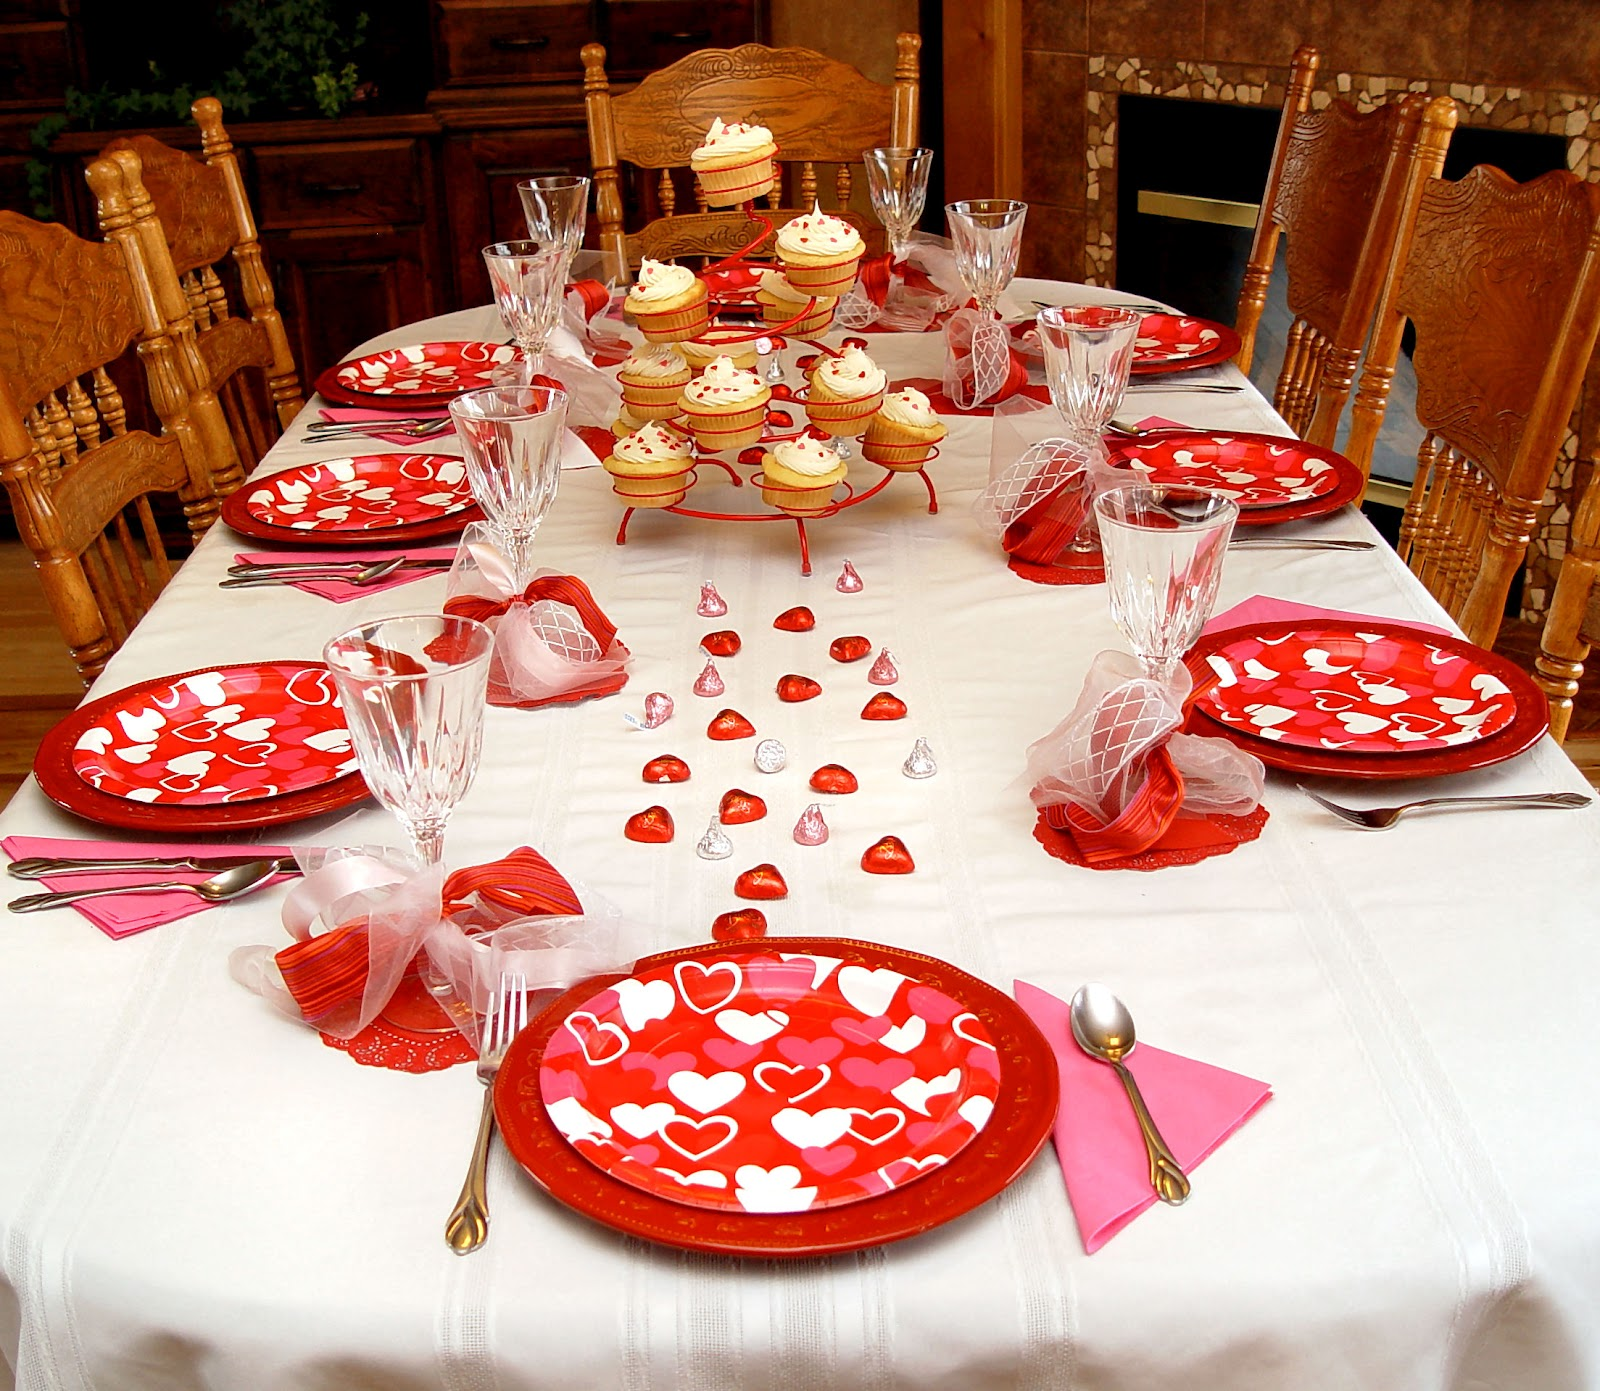 Family Valentines Dinner Idea And How To Make A Junk Bow